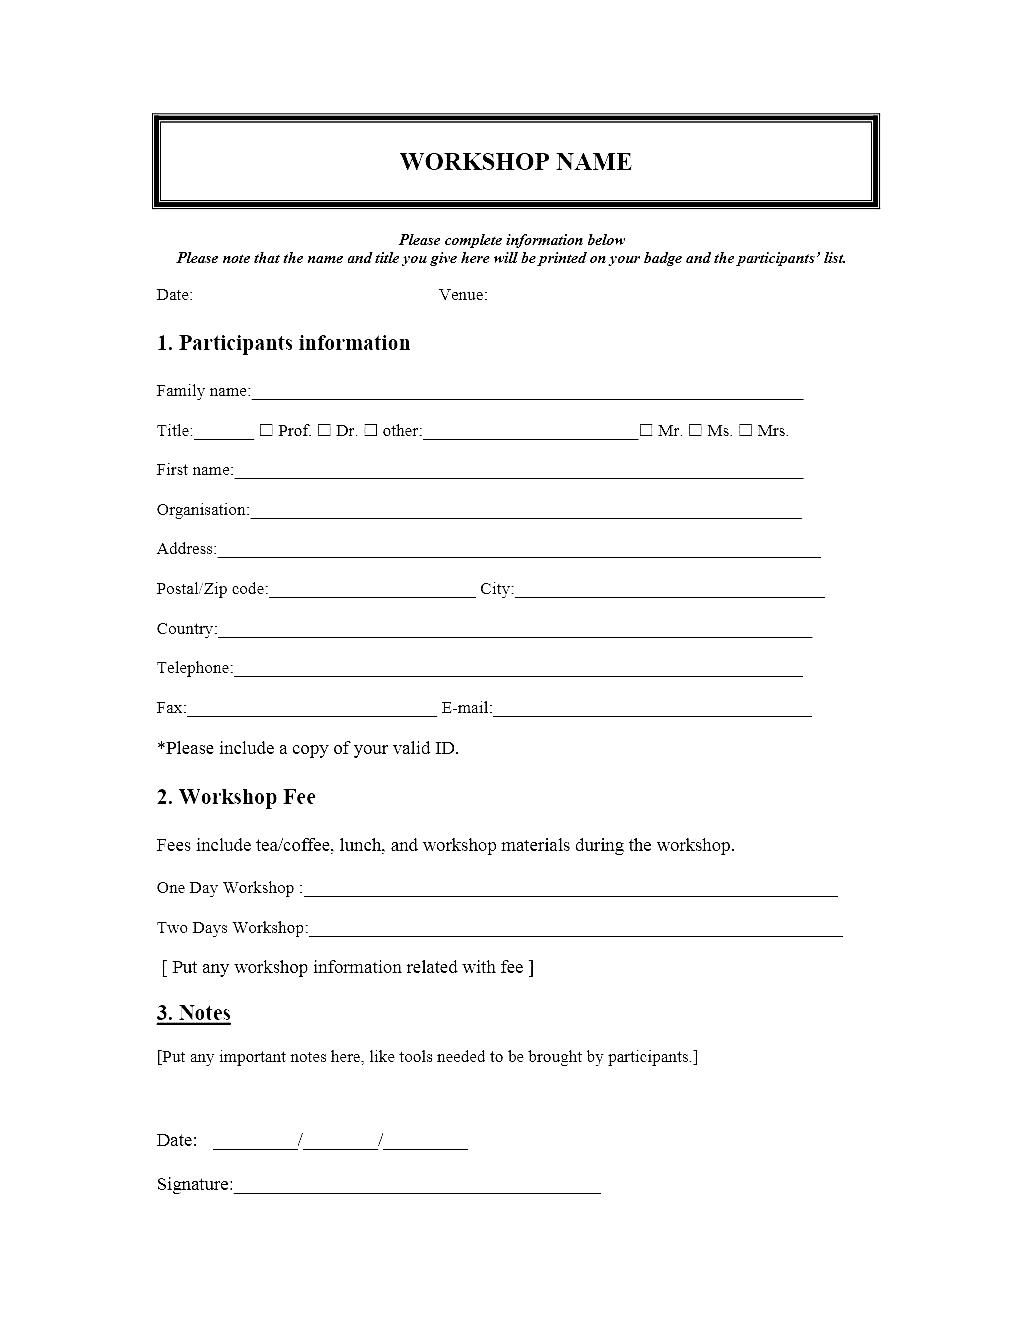 Event registration form template microsoft word for Event booking form template word